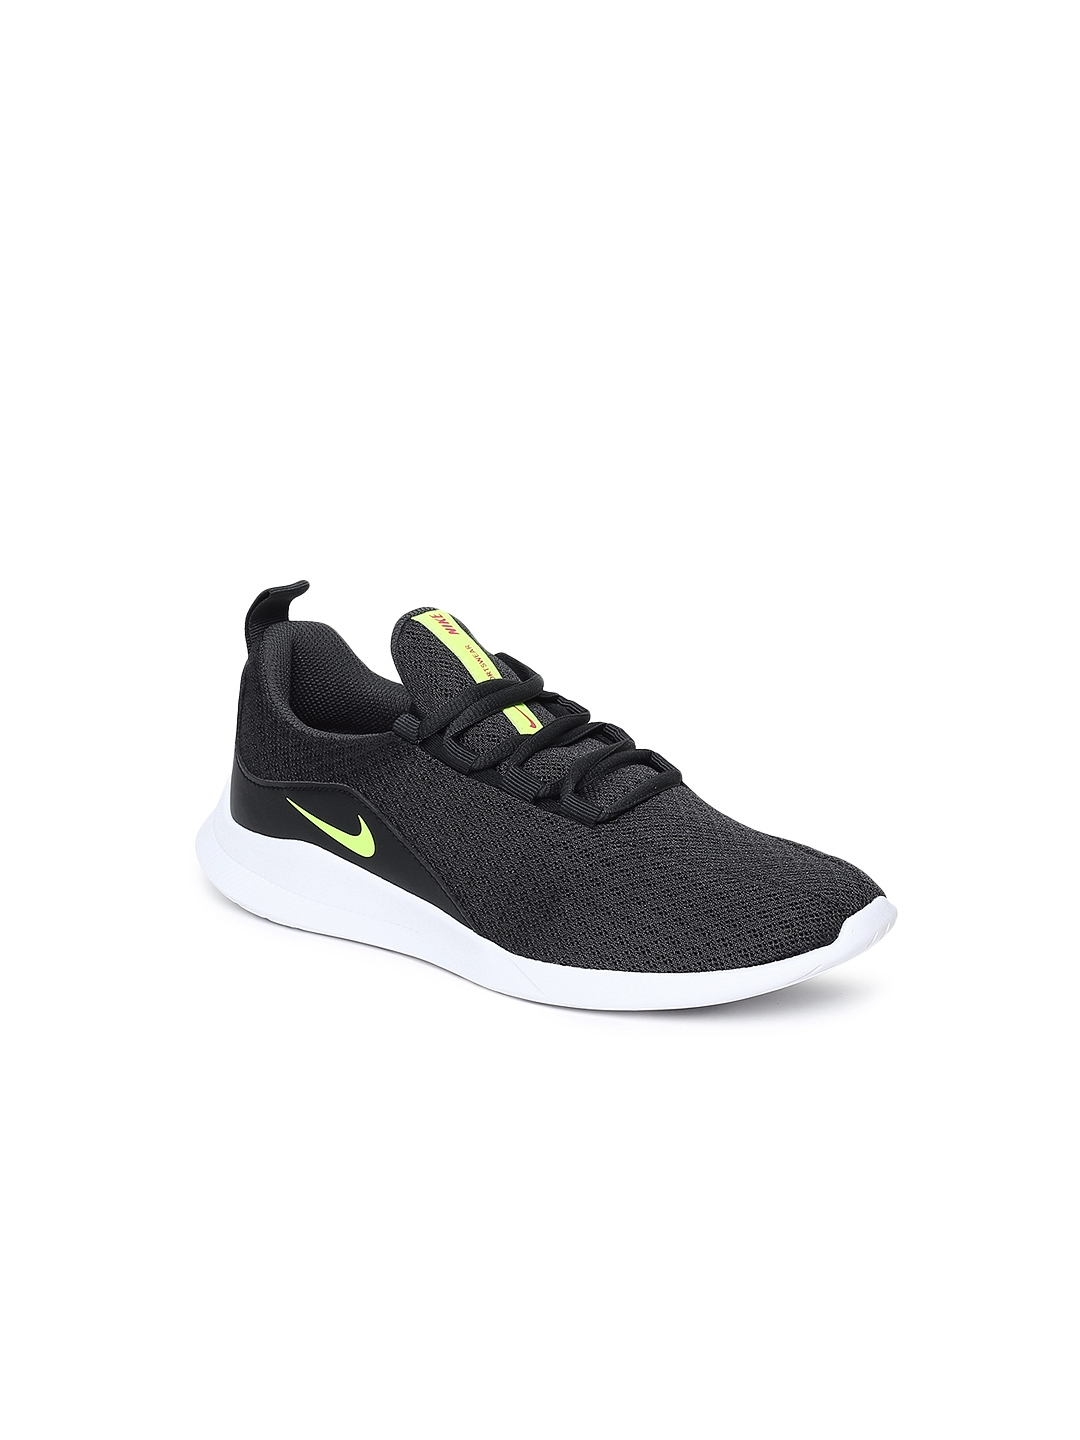 Suradam Pornografía Compulsión  Buy Nike Boys Black VIALE (GS) Sneakers - Casual Shoes for Boys 9082821 |  Myntra